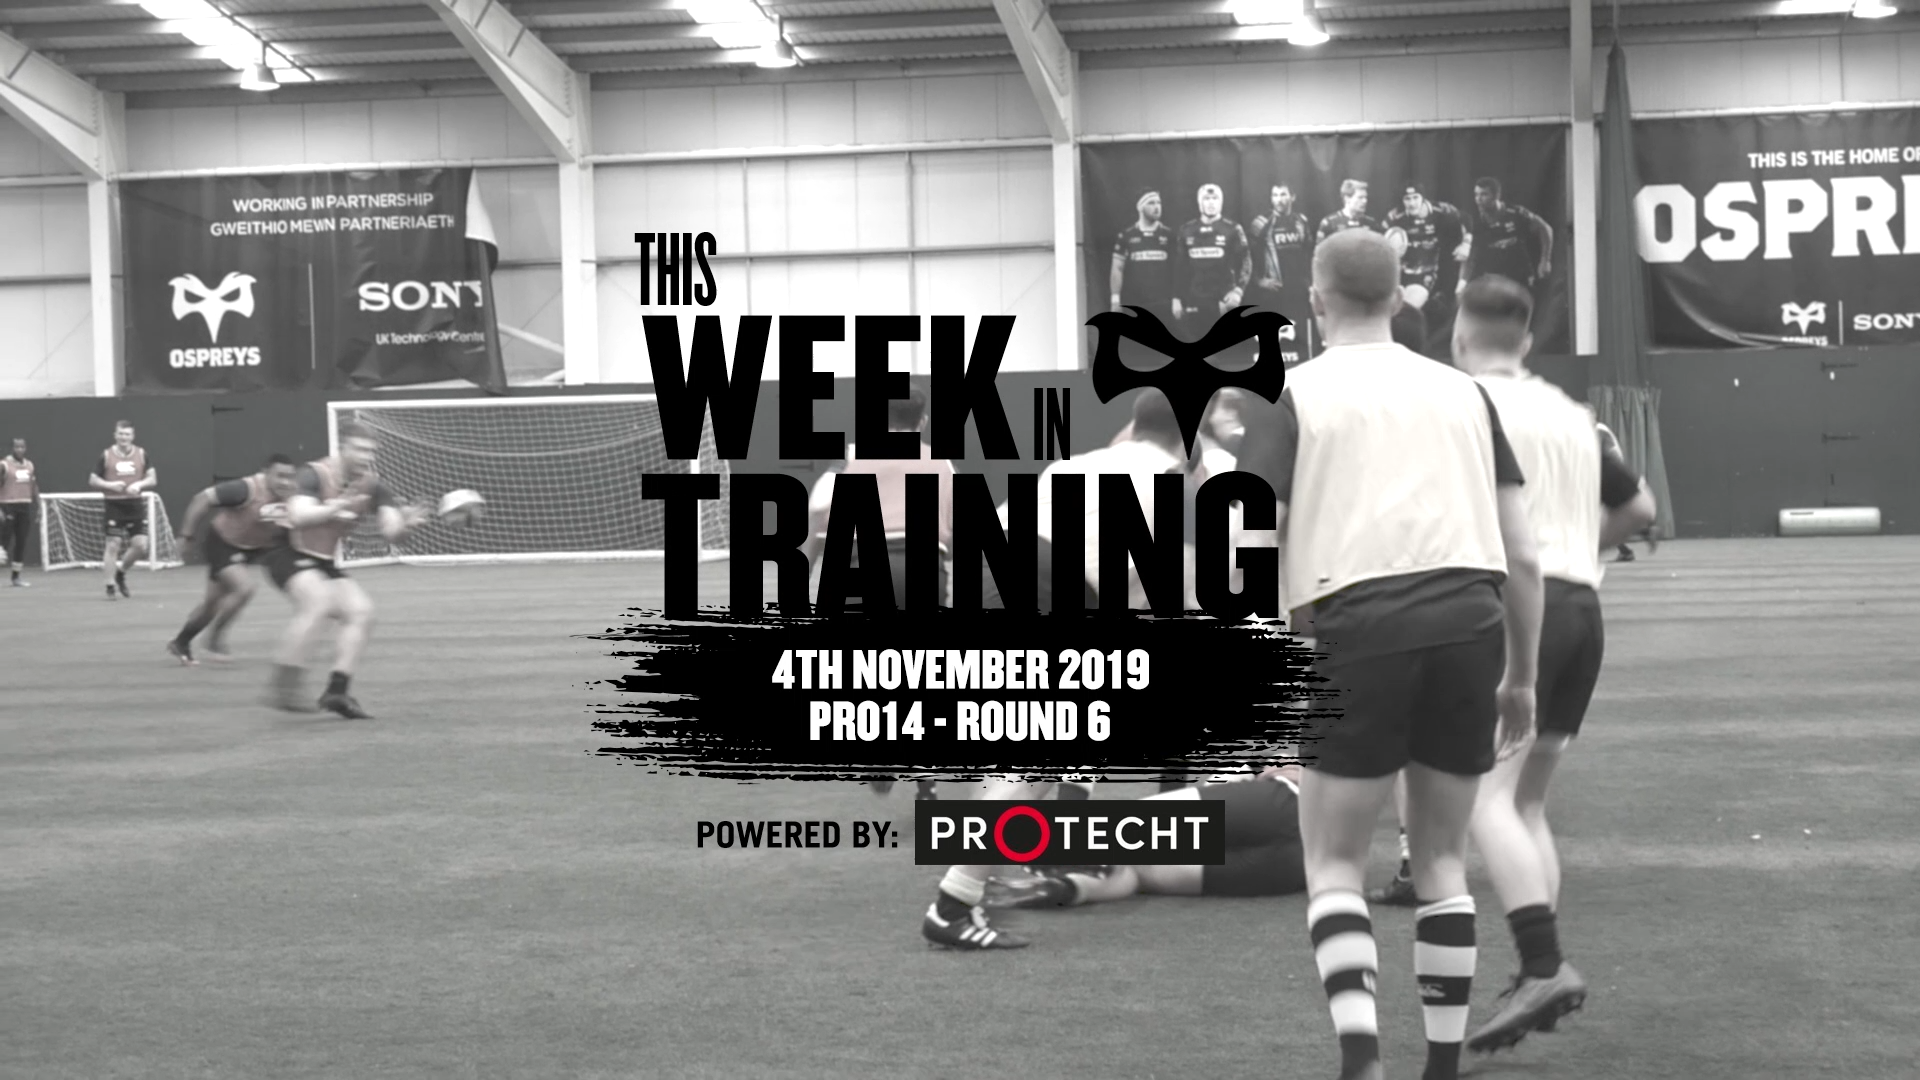 This Week In Training 4th November